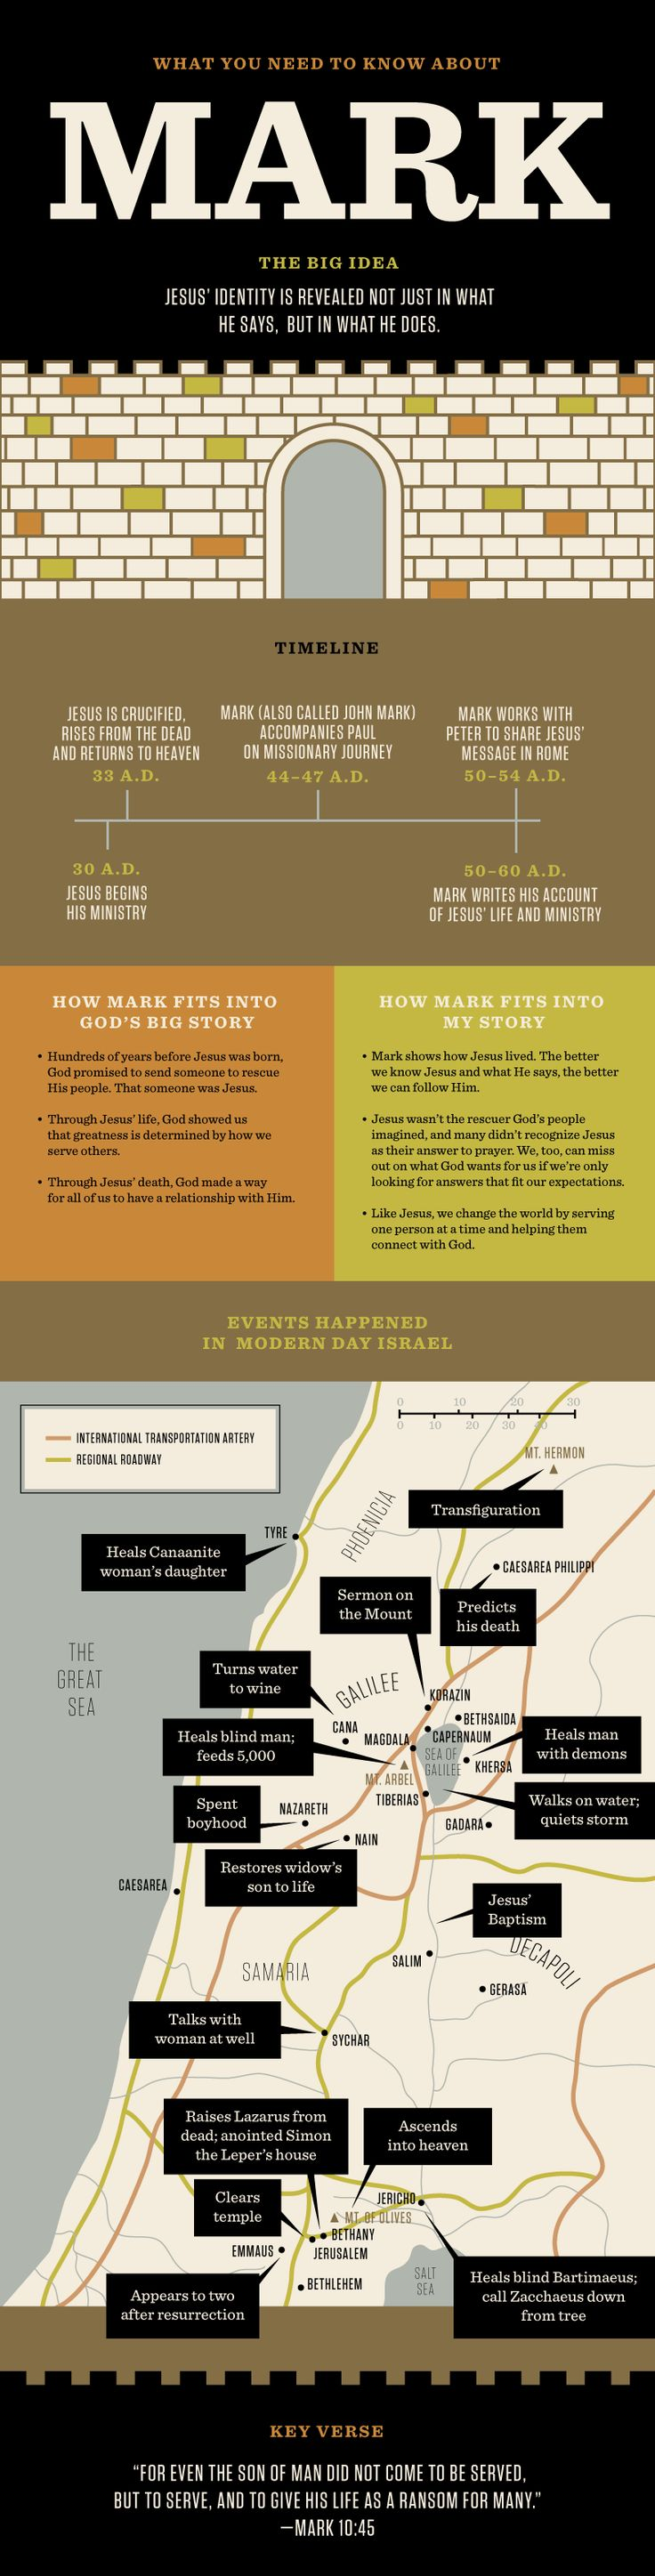 Bible Need To Know is recurring feature that looks at the story behind the stories in the Bible. Use this infographic to help you understand the book of Mark. We'd love to hear what you're learning along the way! Send us an email